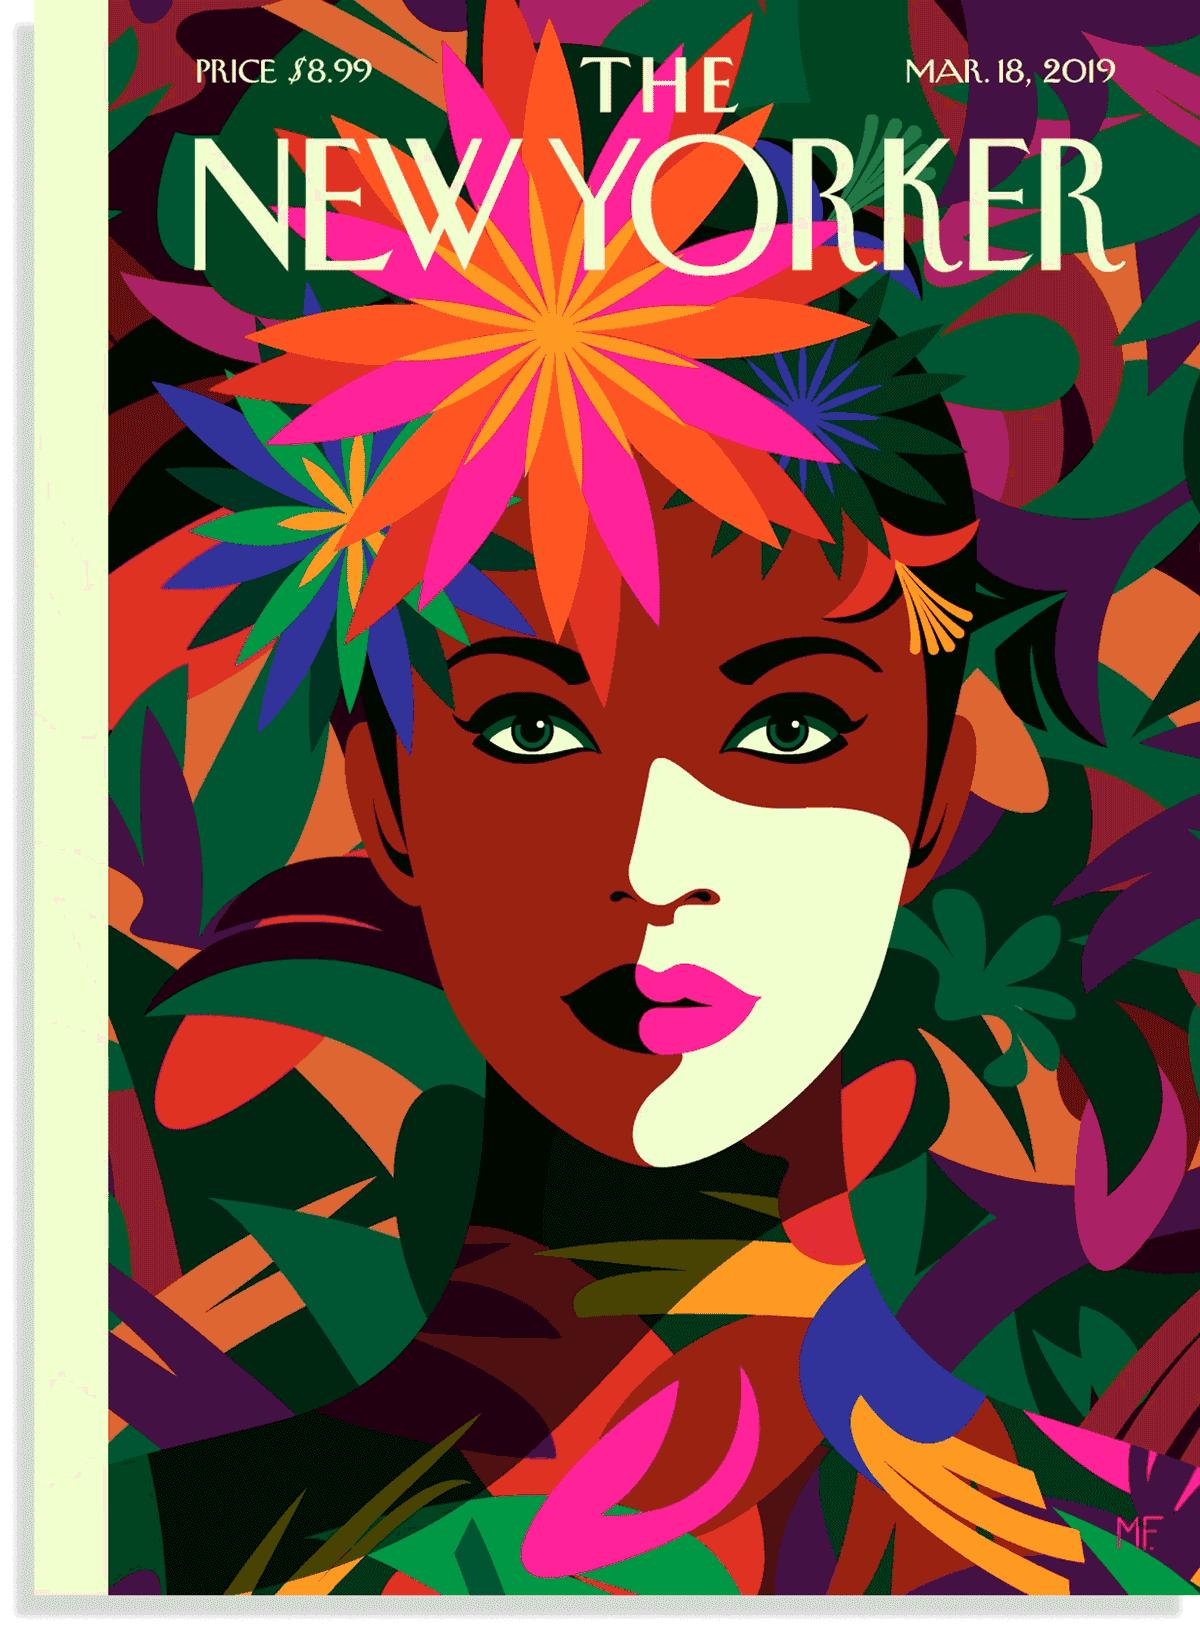 Frida Kahlo New Yorker Spring Style Issue Malika Favre New Yorker Gif